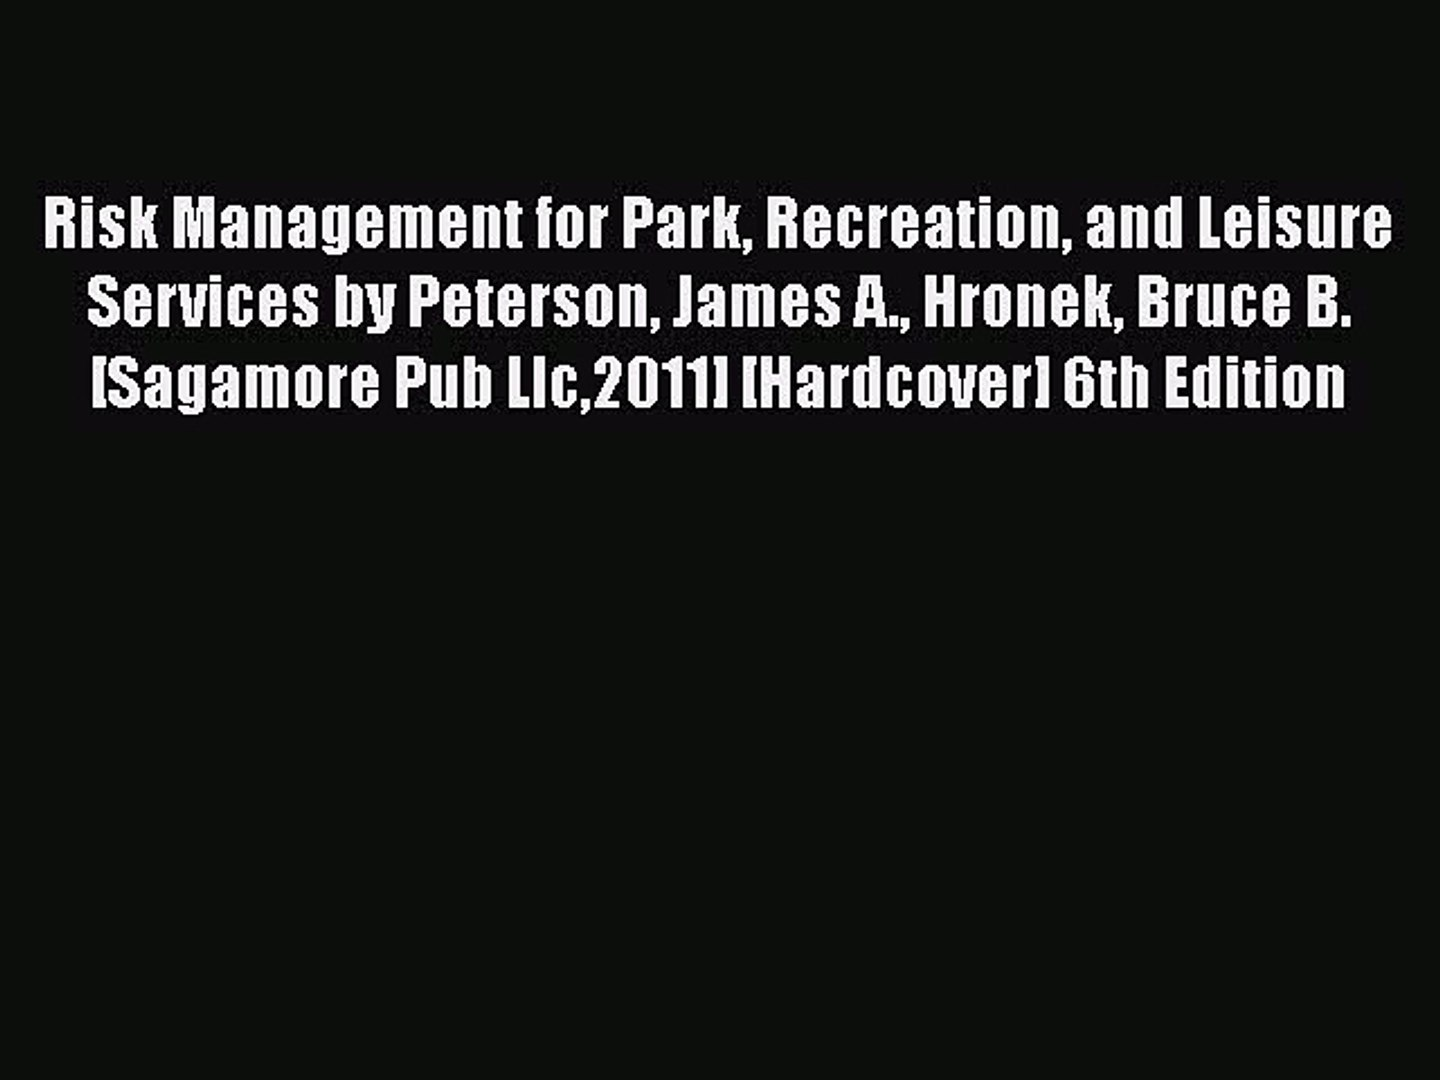 Risk management for park, recreation, and leisure services.